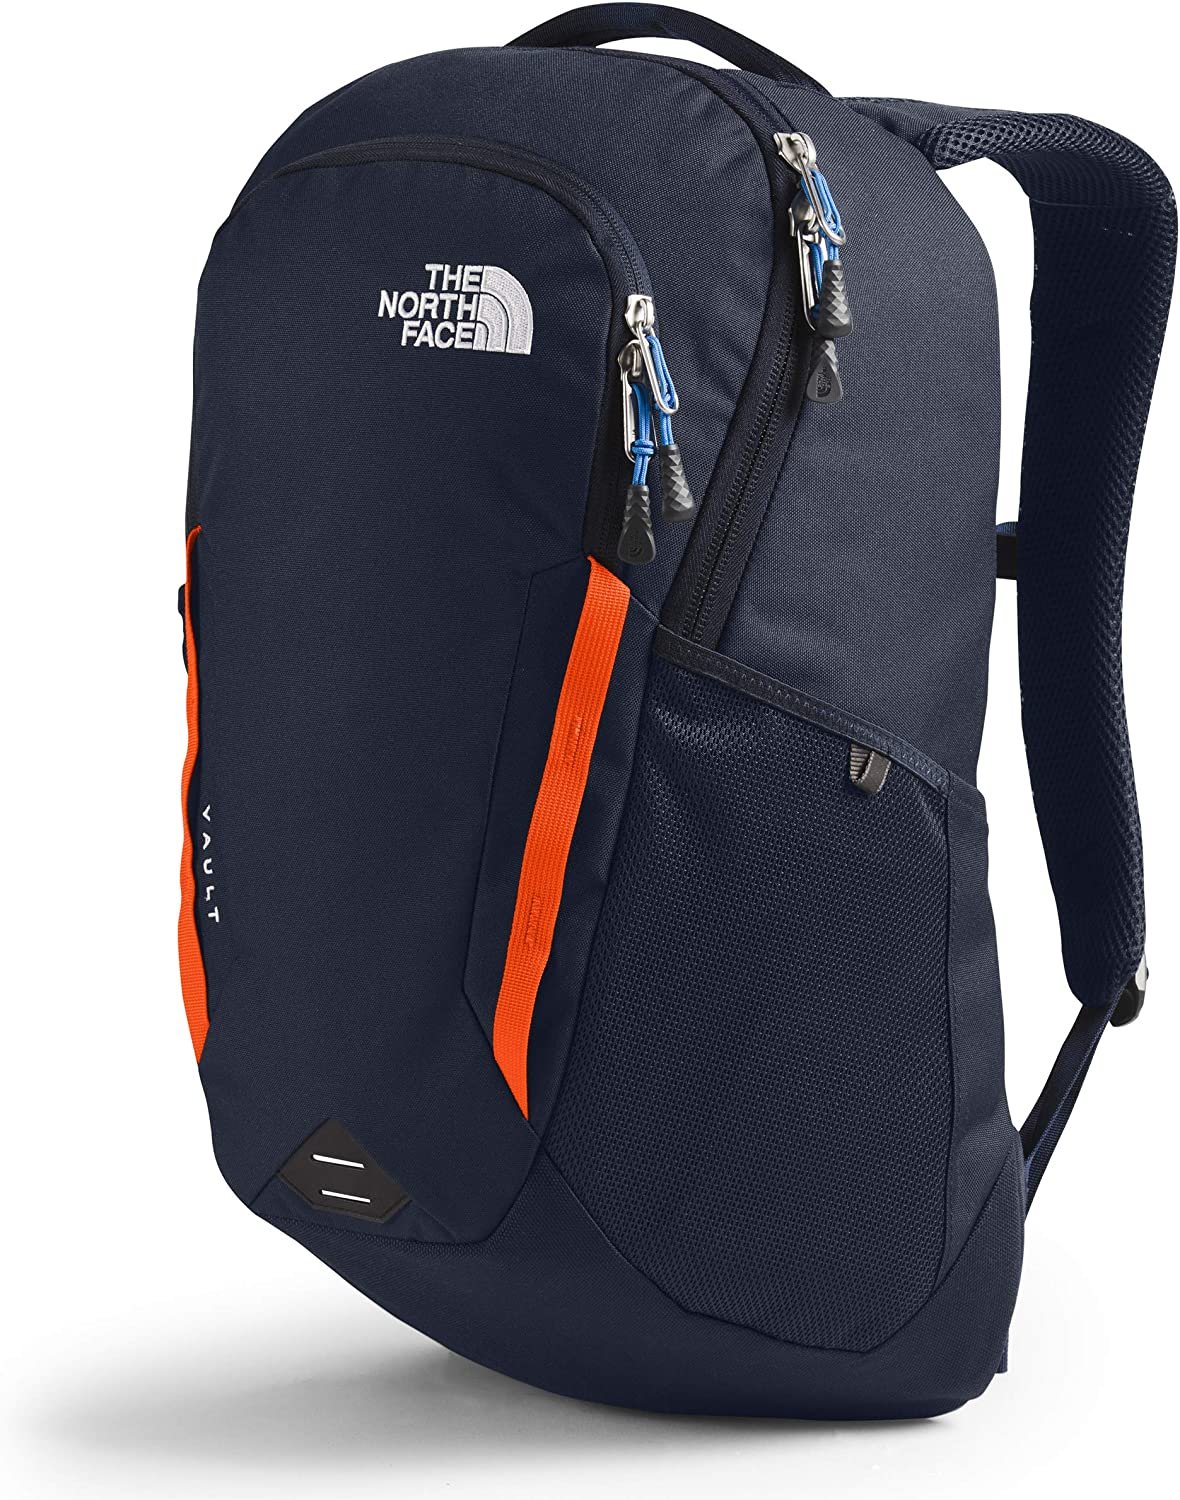 TNF DARK GREY HEATHER// P ORANGE DAYPACK A3KV9 THE NORTH FACE VAULT BACKPACK